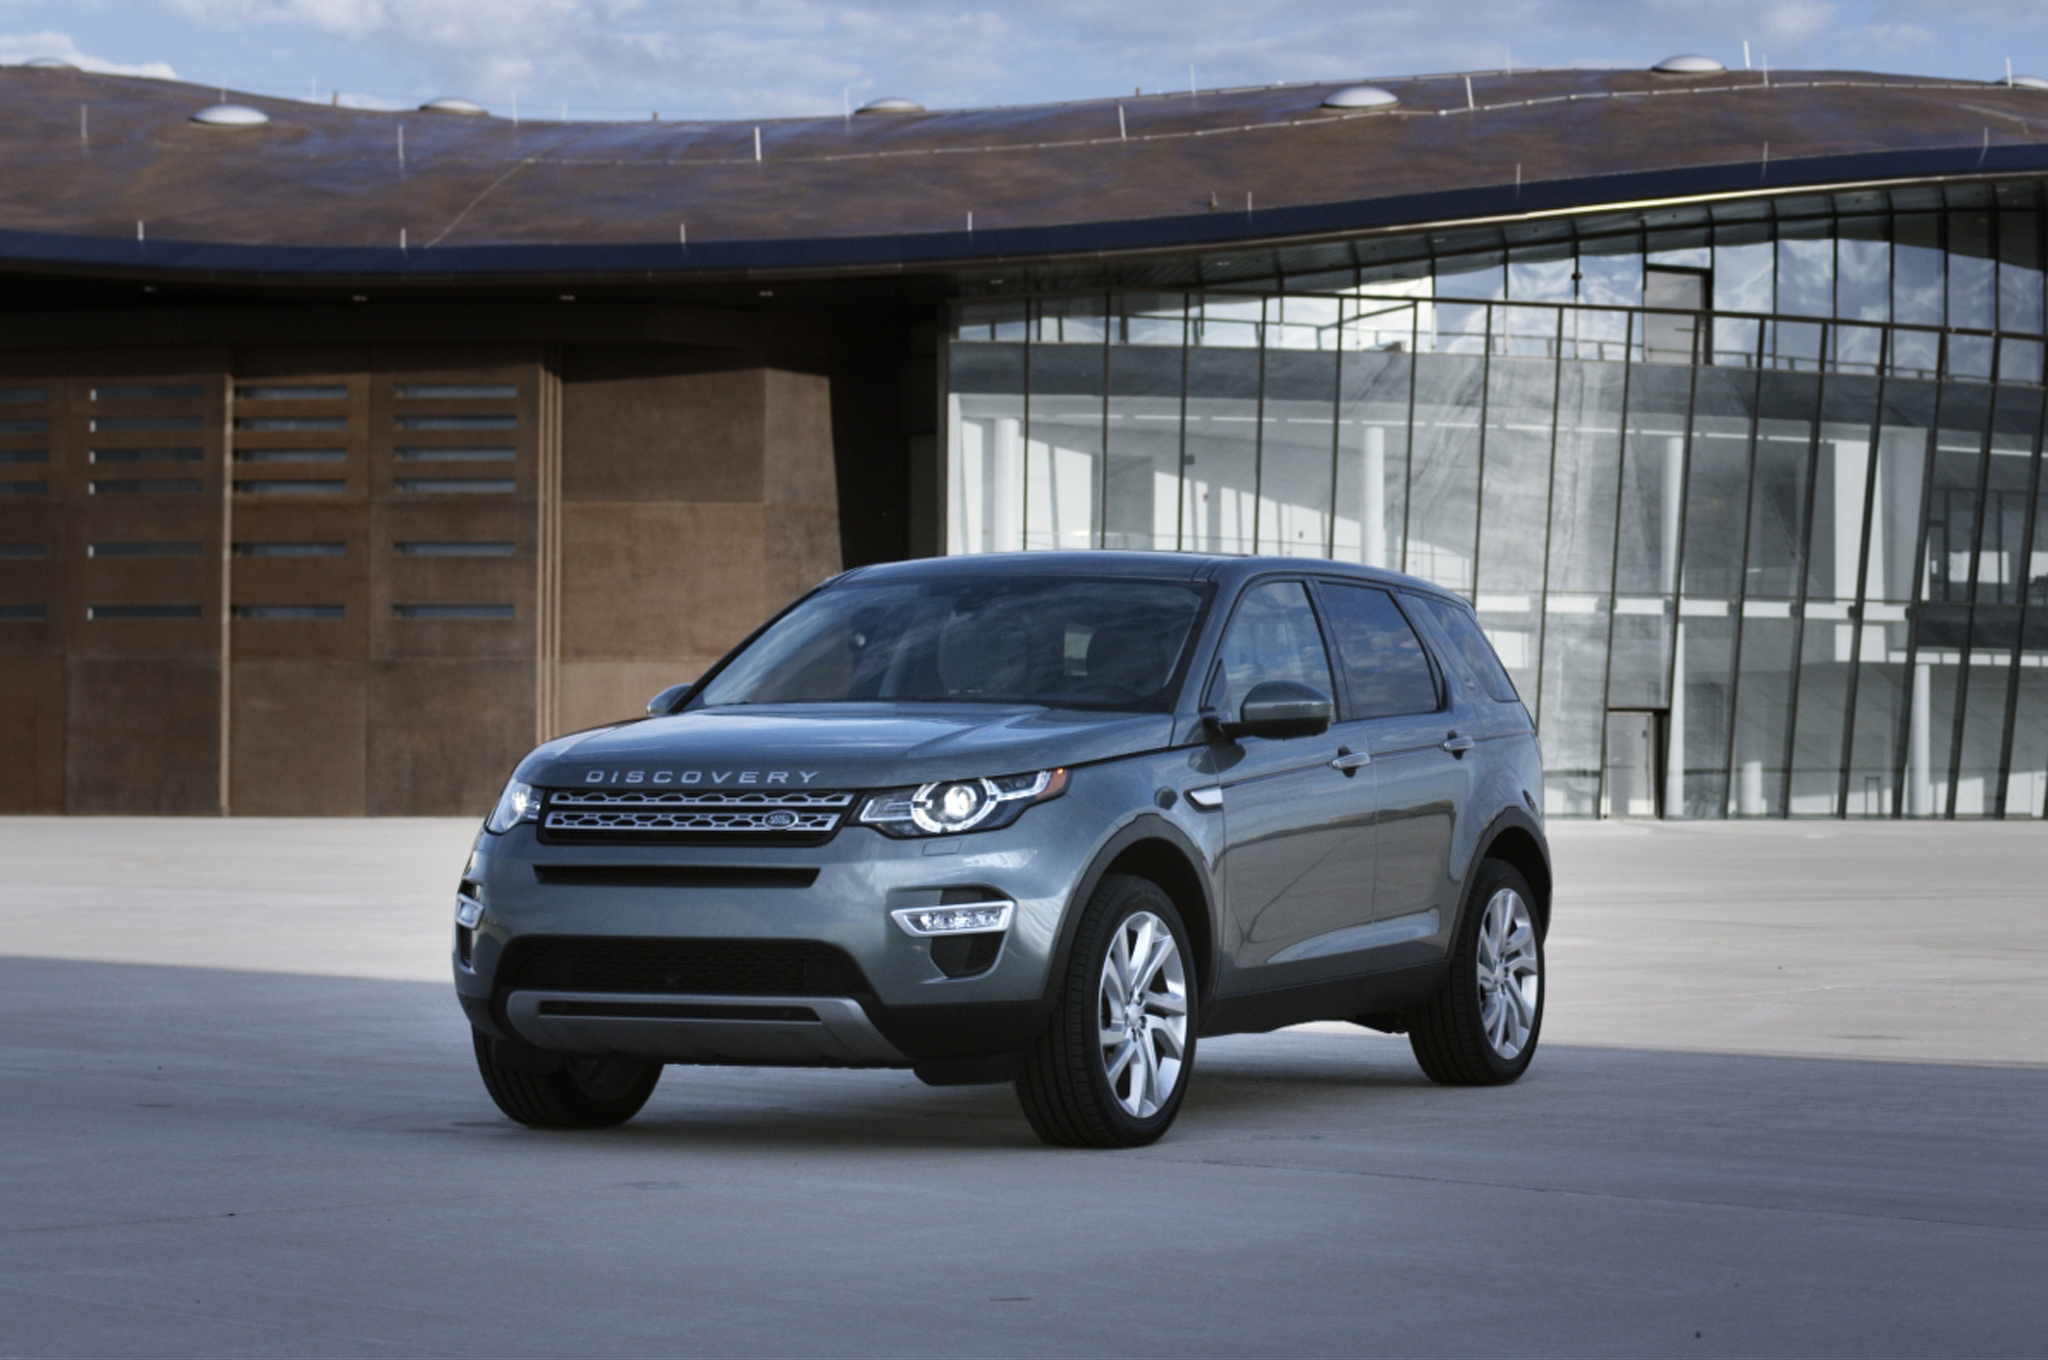 2015 Land Rover Discovery Sport, it does not zoom though it has enough room